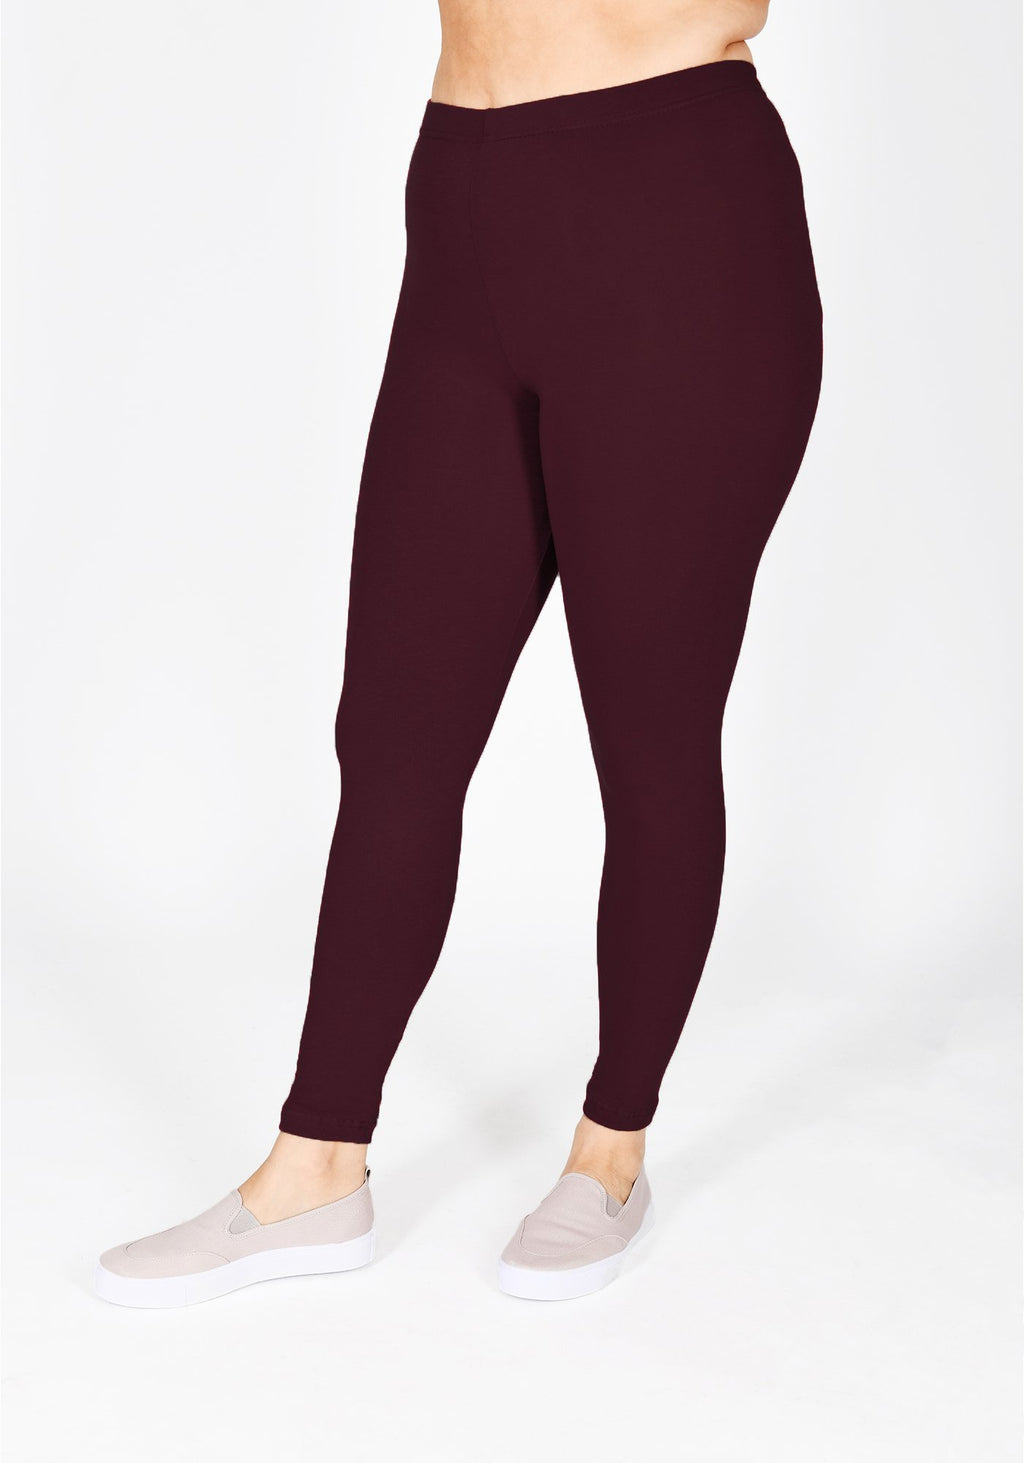 Classic Plus Size Burgundy Leggings